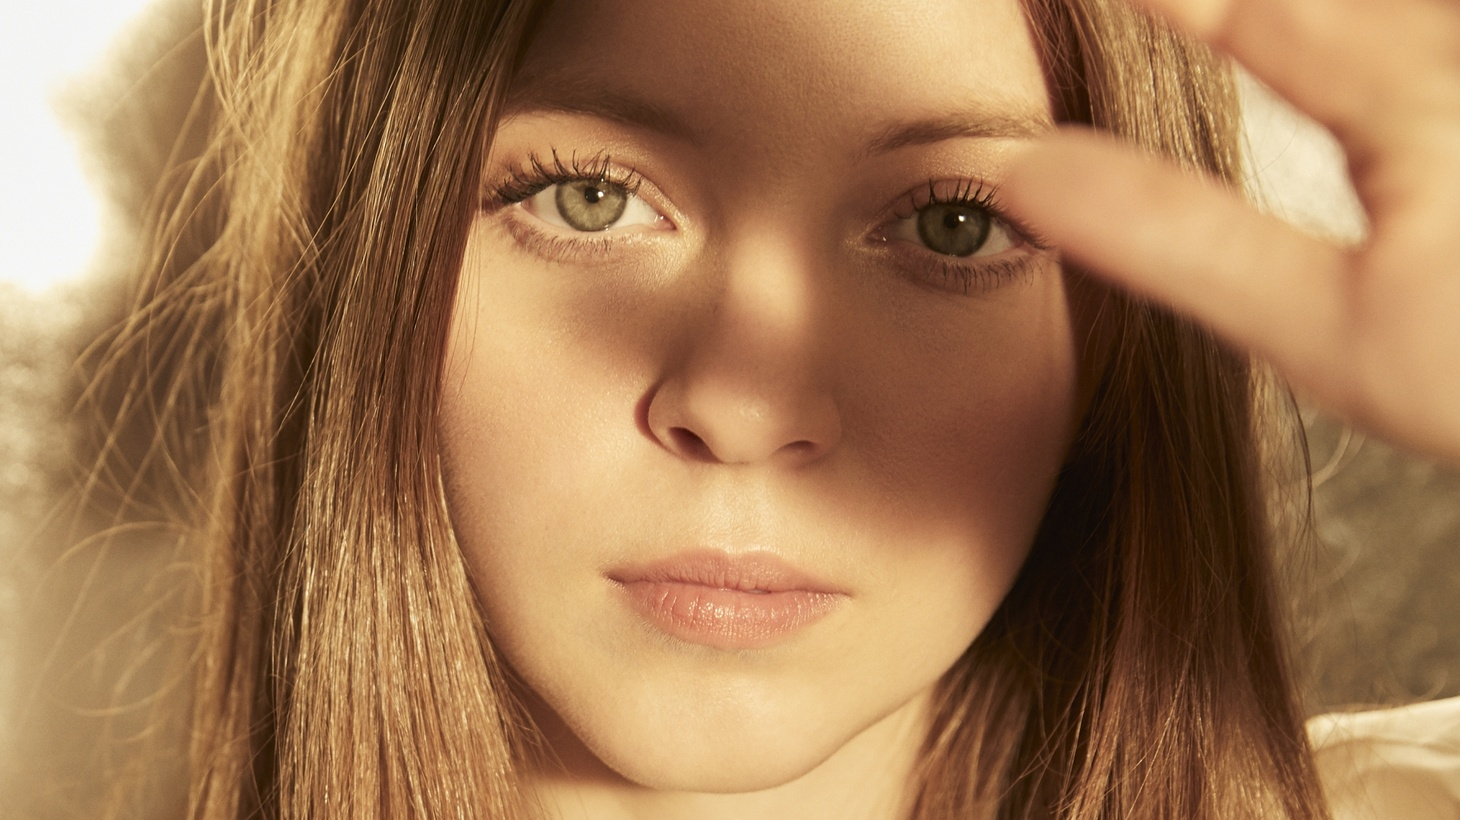 Jade Bird's 2017 EP wowed us with her vocal and songwriting talent. With the release of her self-titled debut album, she proves once again that talent, drive and a wicked sense of humor can prove to be successful mix.